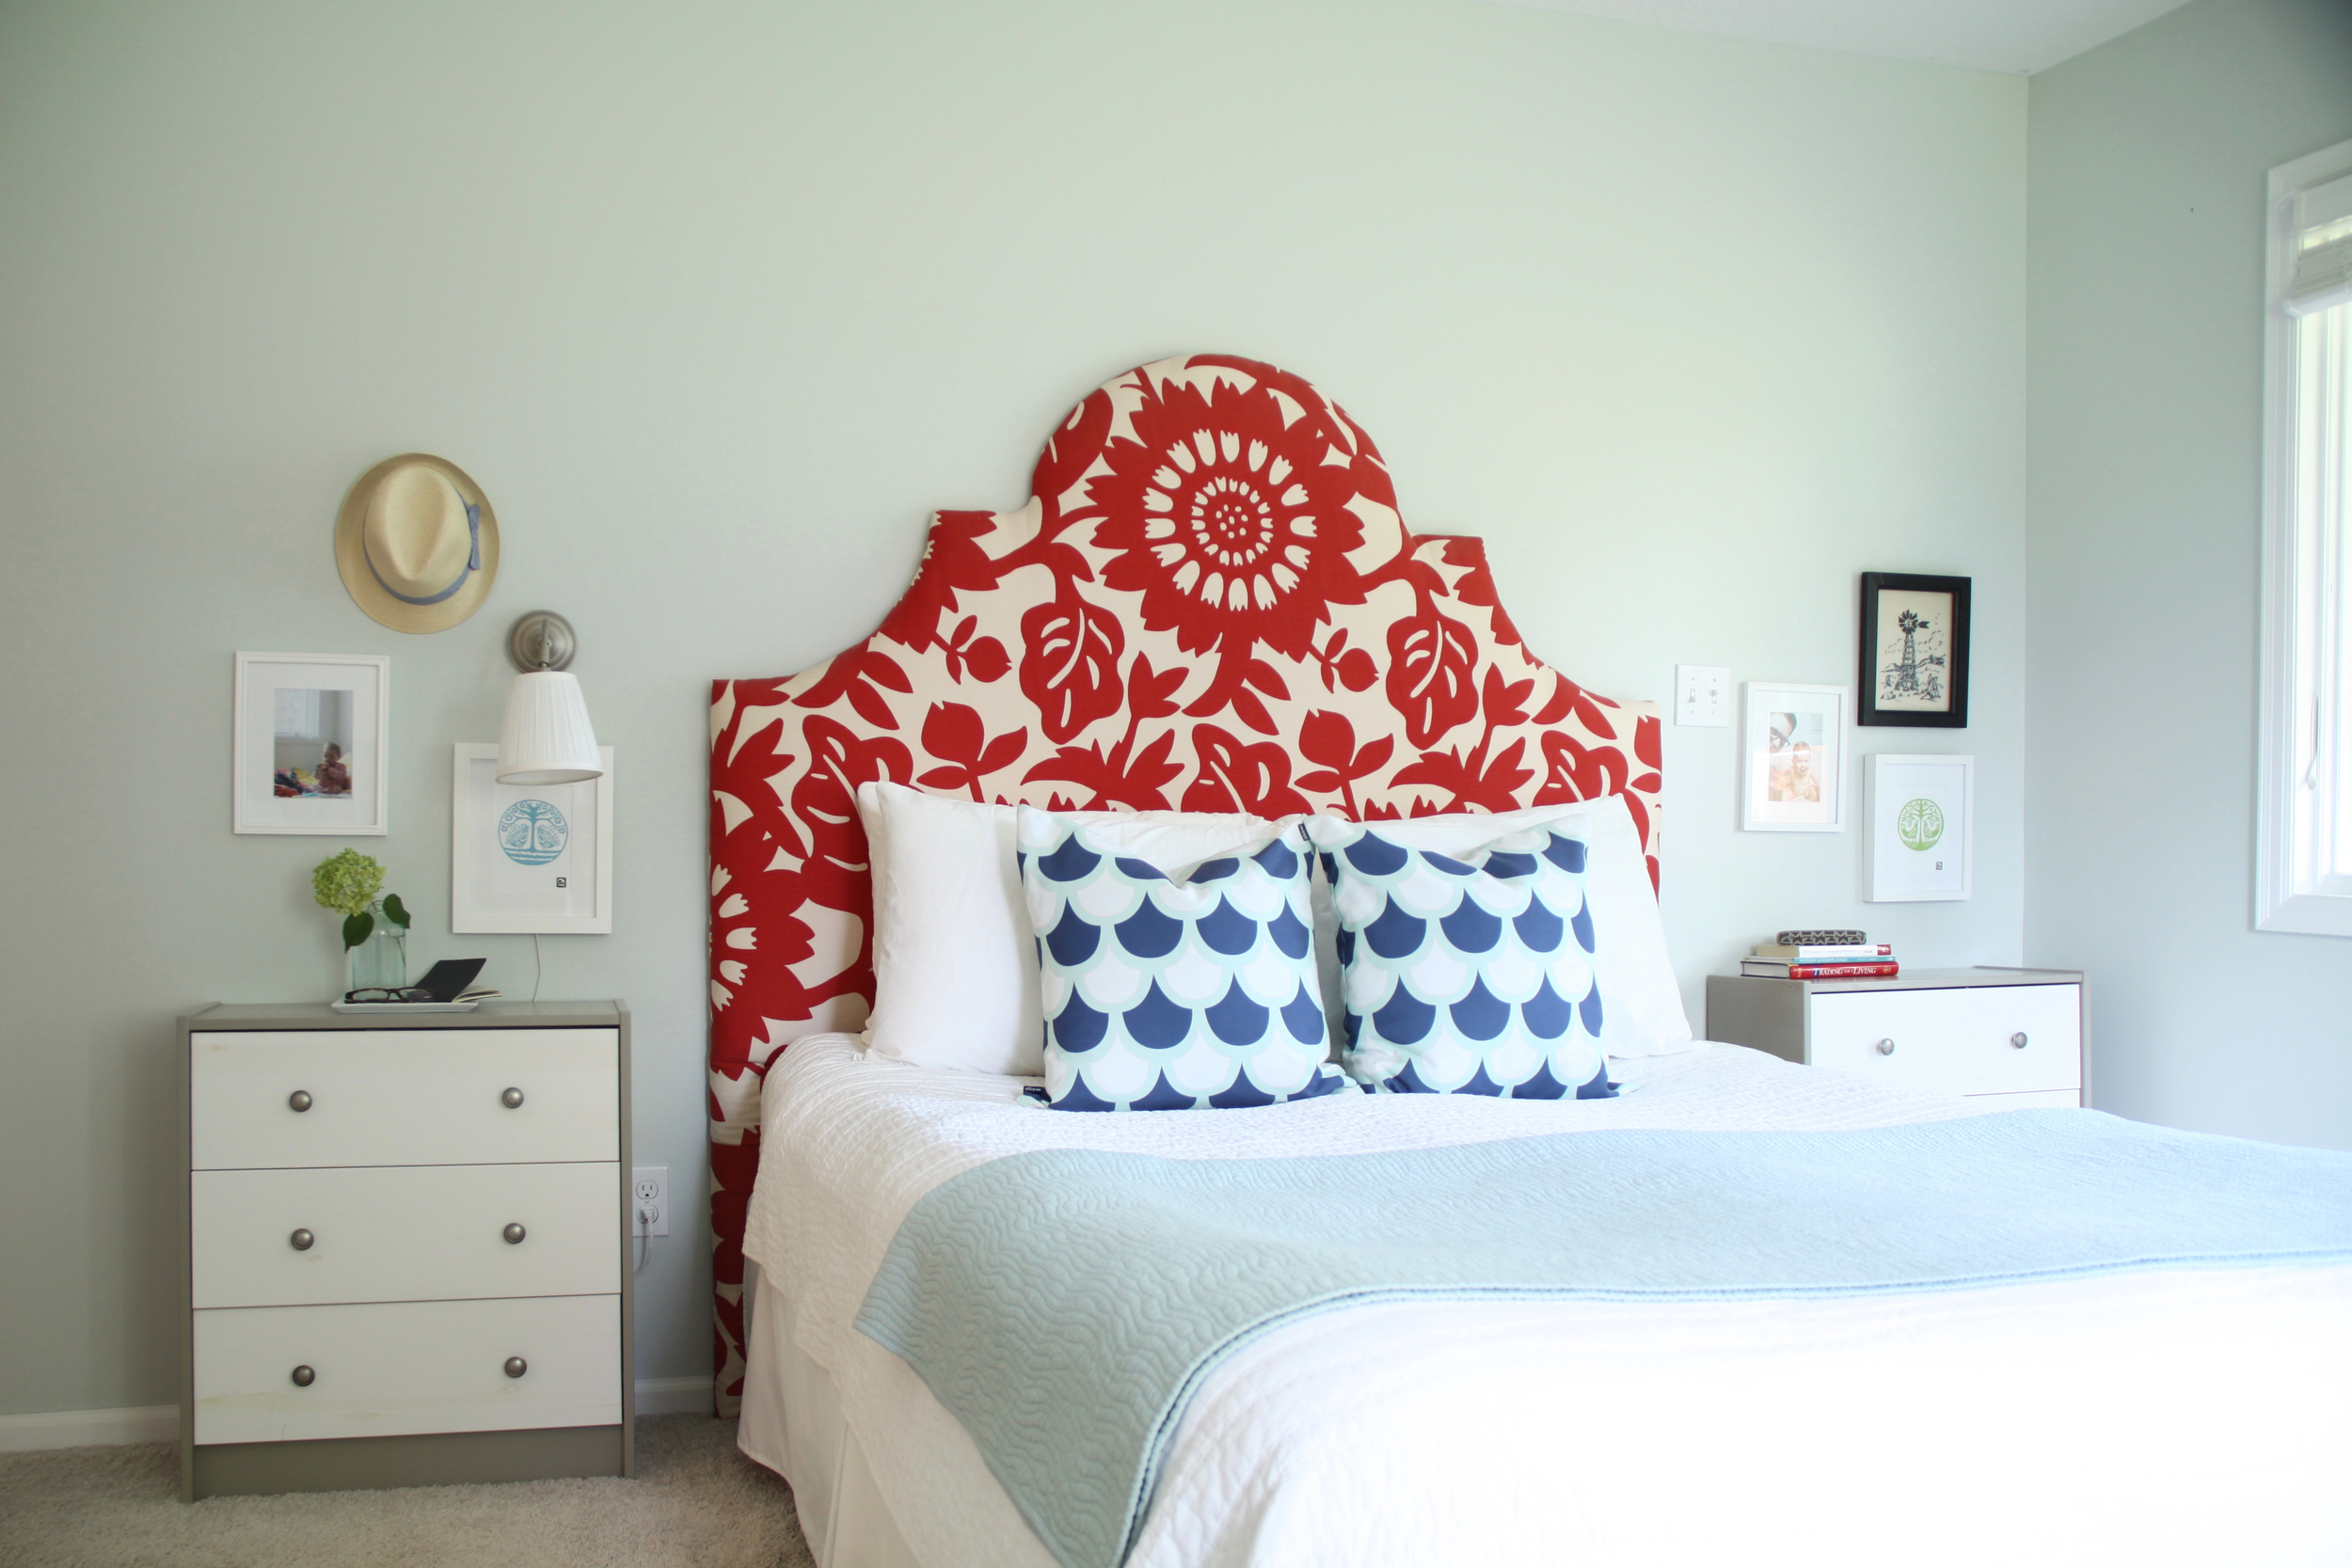 Master Bedroom with Red Headboard and Pale Blue Walls (Healing Aloe)